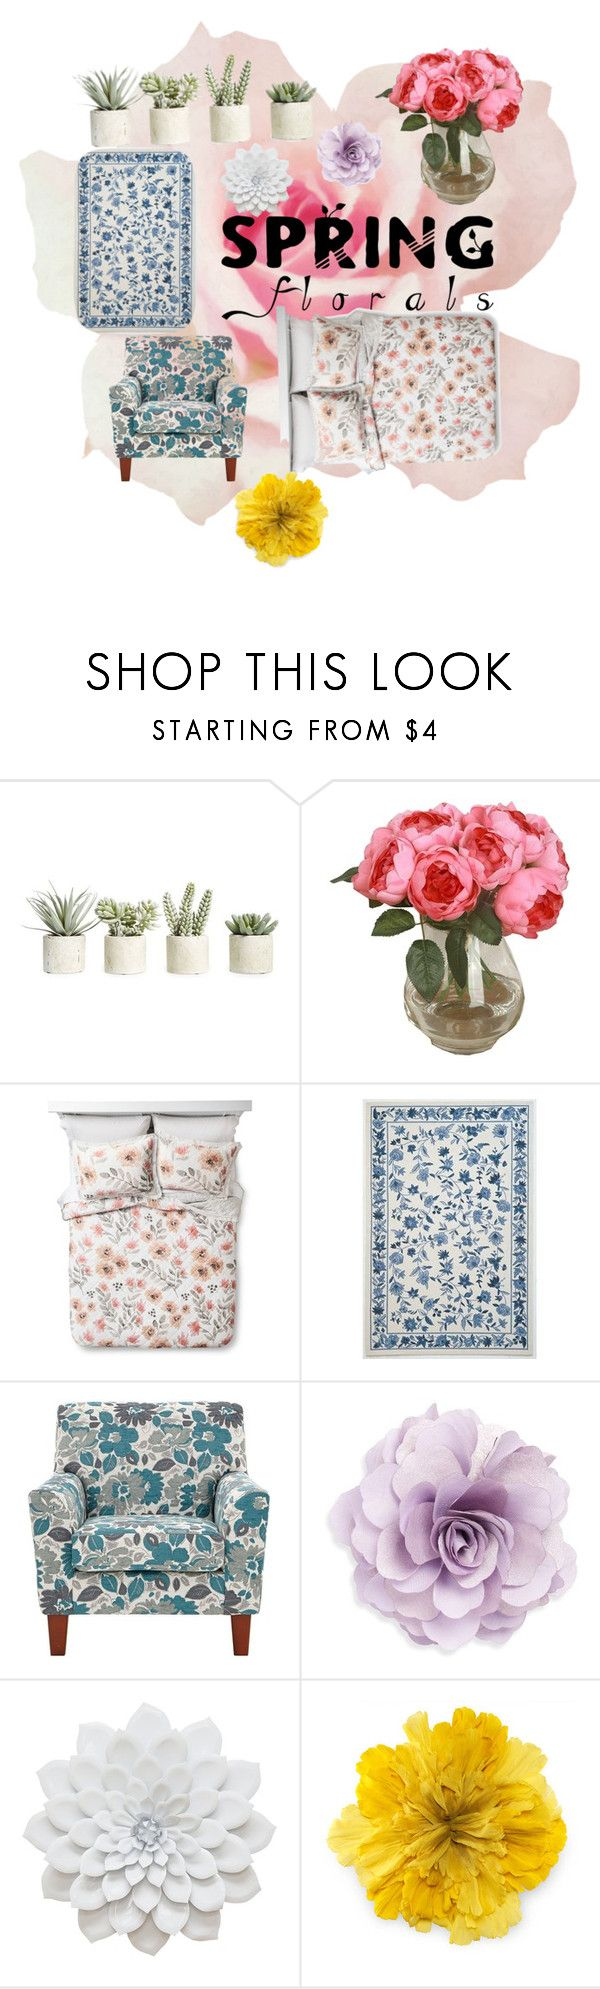 Threshold home decor shop for threshold home decor on polyvore -  Cute Decor By Jll05 Liked On Polyvore Featuring Interior Interiors Interior